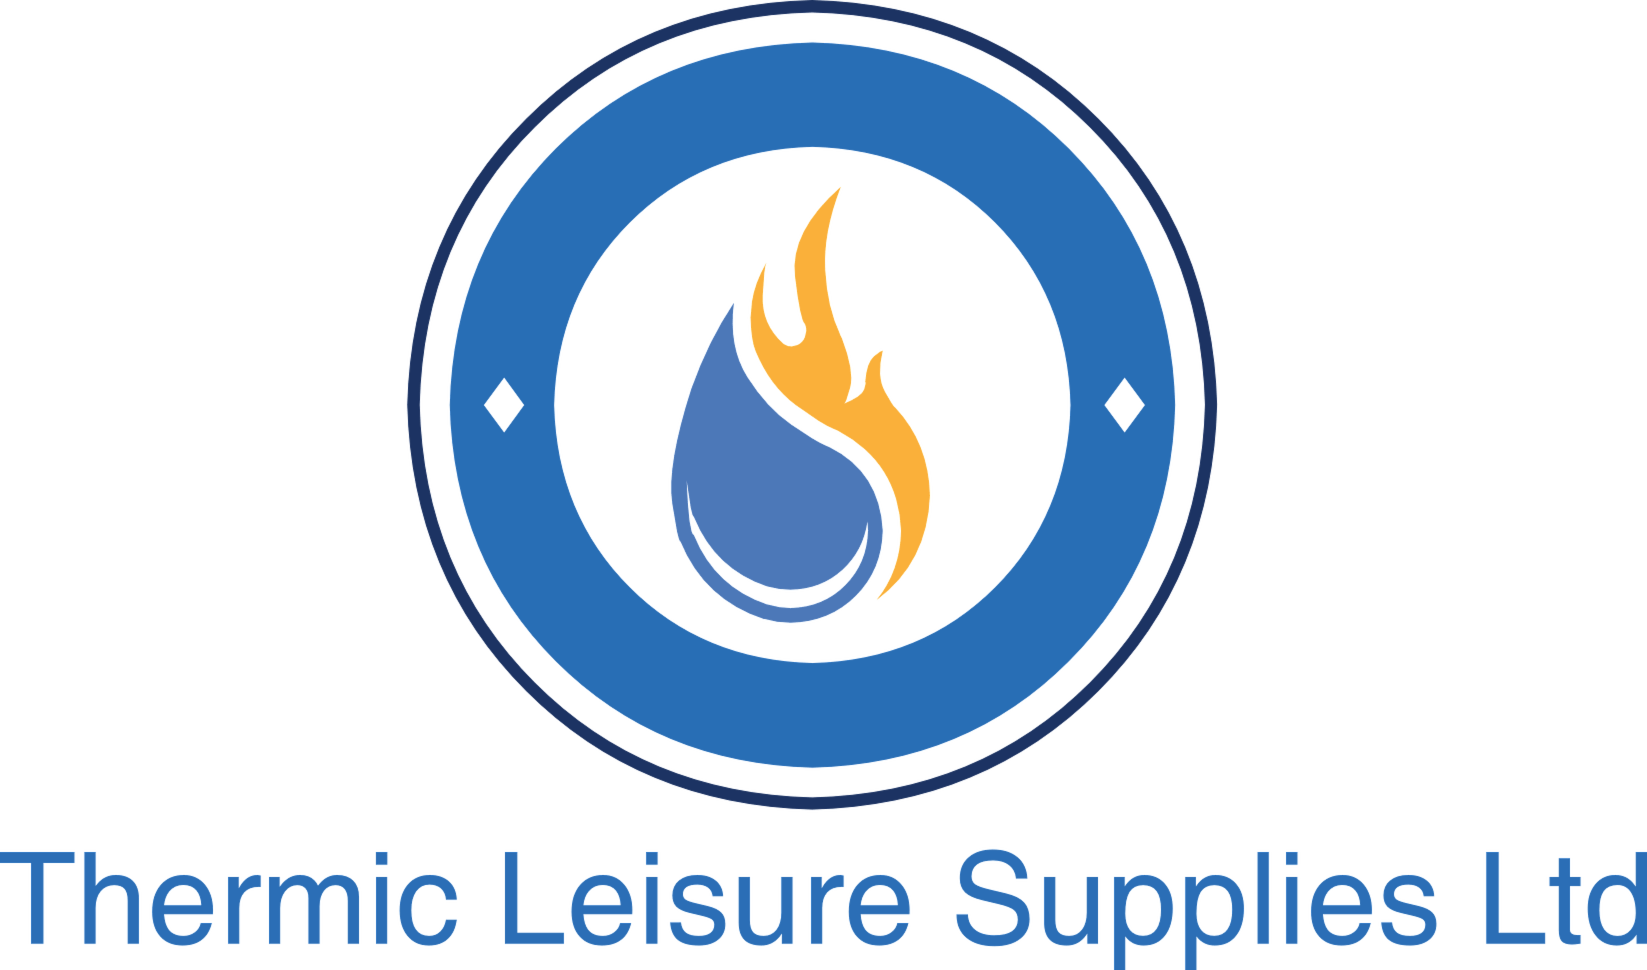 THERMIC LEISURE SUPPLIES LTD